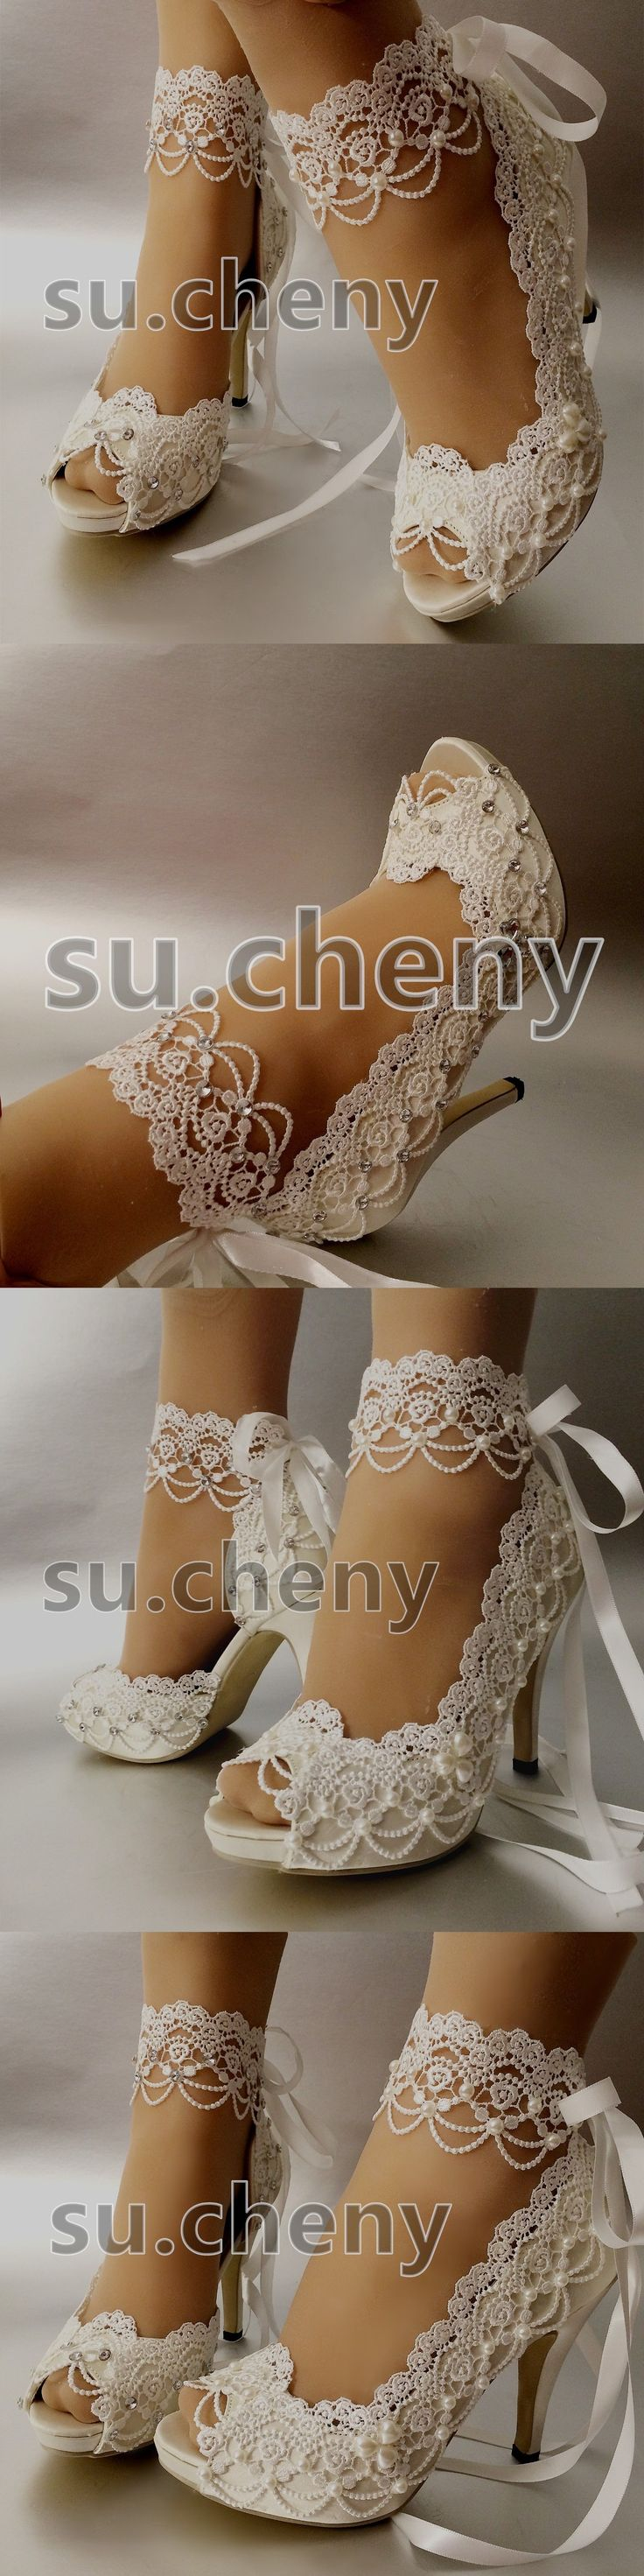 "Wedding Shoes And Bridal Shoes: 3 4"" Heel White Ivory Satin Lace Ribbon Open Toe Wedding Shoes Bride Size 5-9.5 BUY IT NOW ONLY: $59.99"